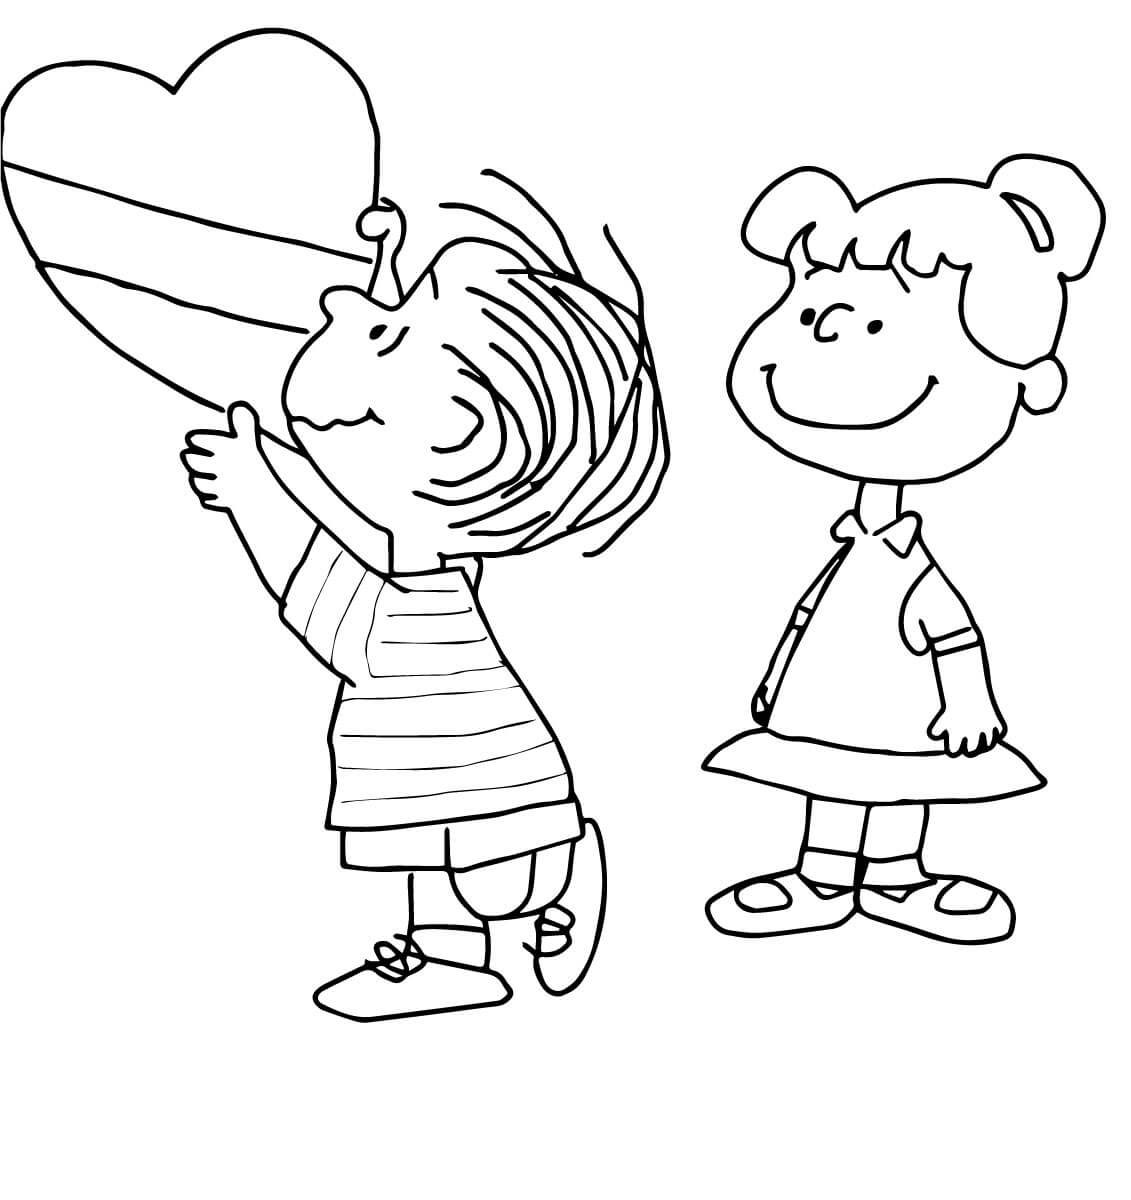 1131x1200 Charlie Brownristmas Coloring Page Thanksgiving Pages To Print